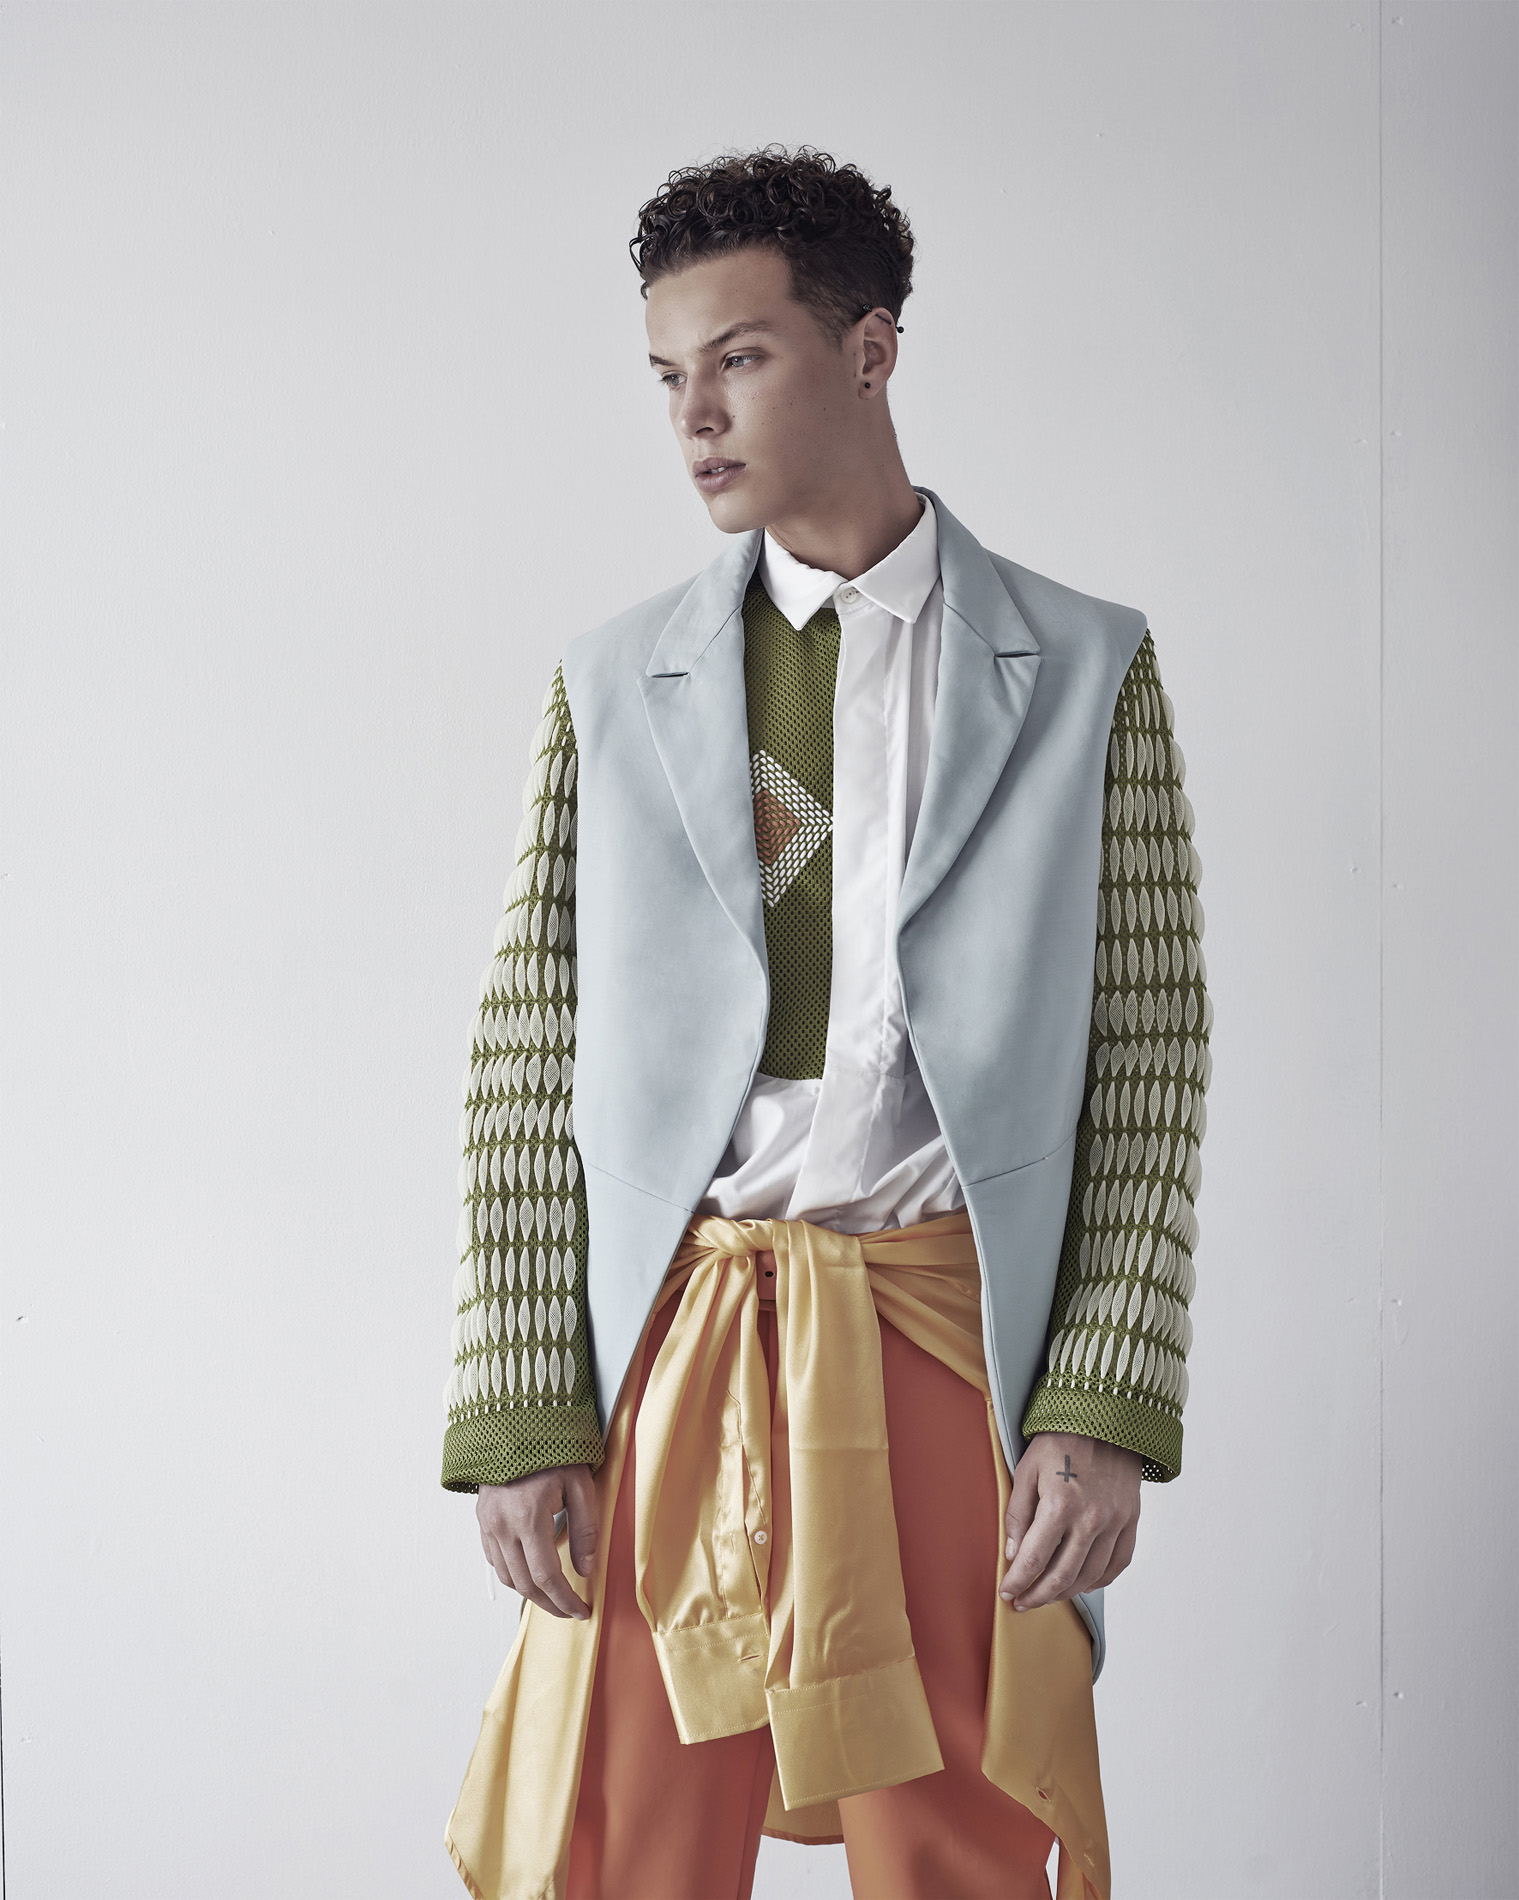 Daniel by Ester Keate for CHASSEUR MAGAZINE